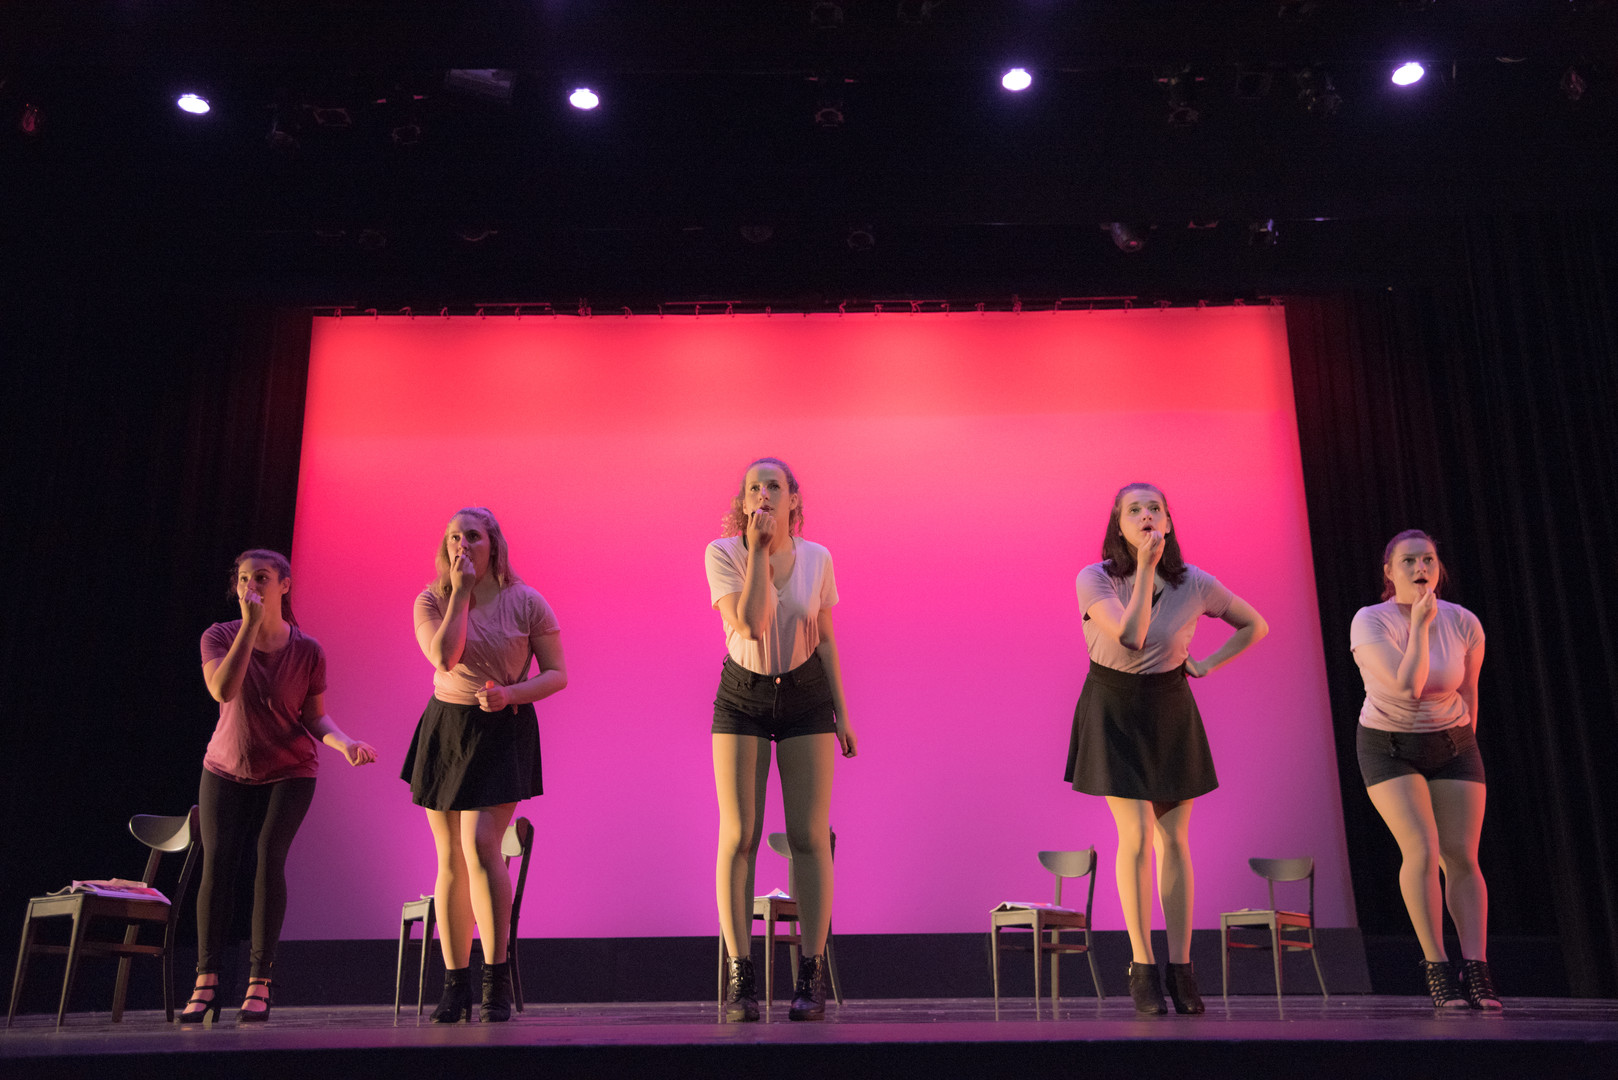 Solstice: A Concert of Dance (second from right in skirt) - Millikin University